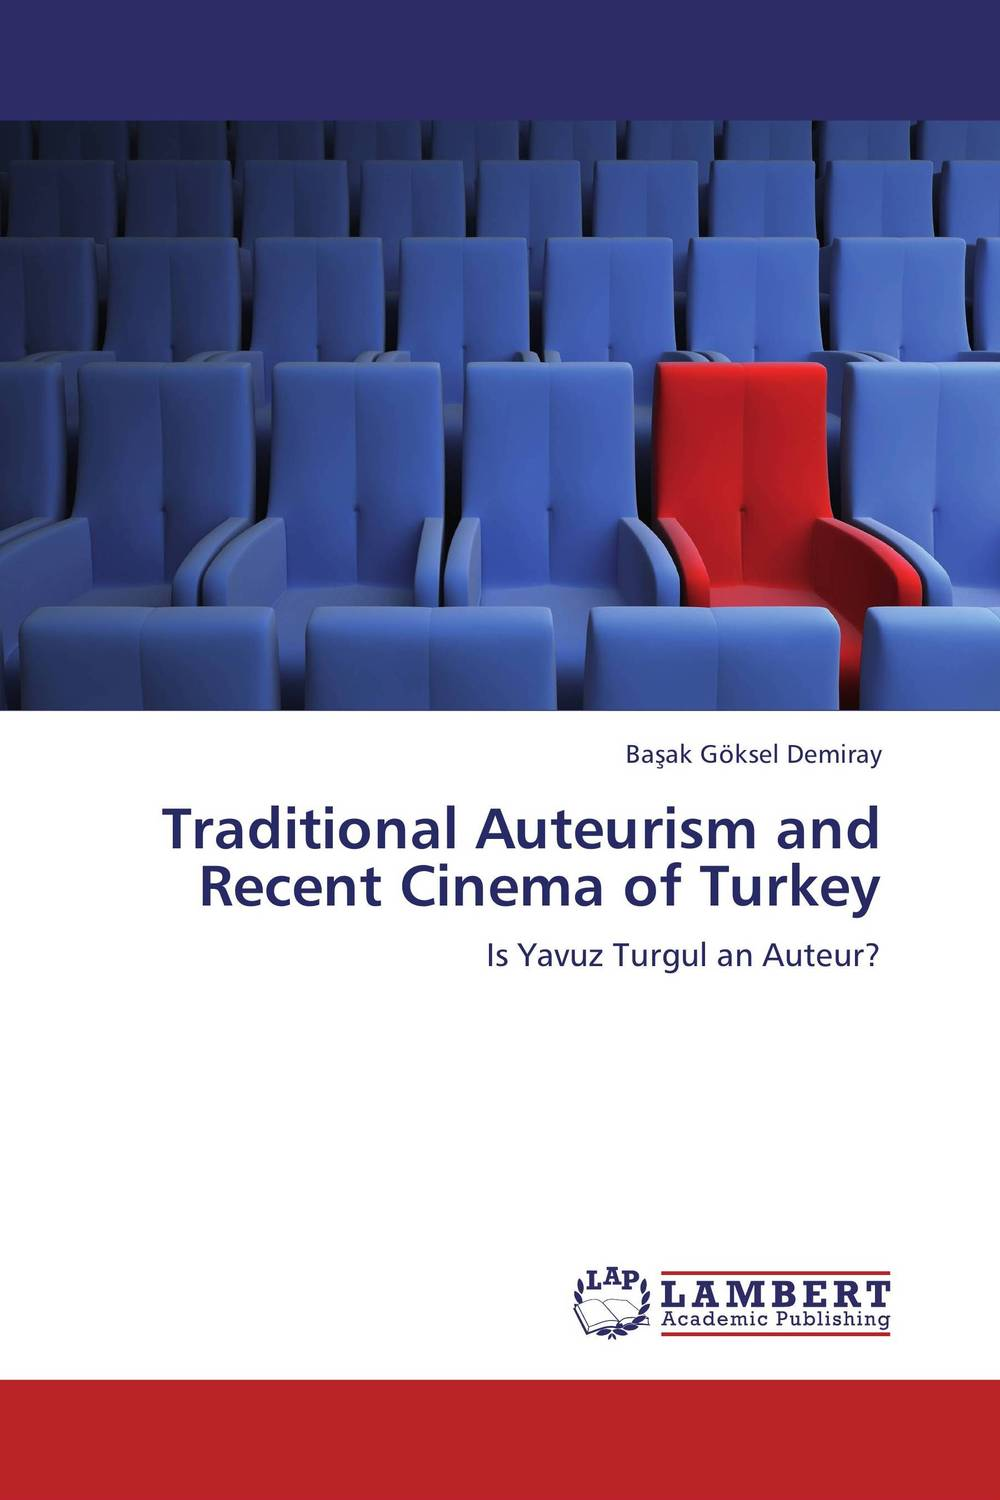 Traditional Auteurism and Recent Cinema of Turkey sense and sensibility